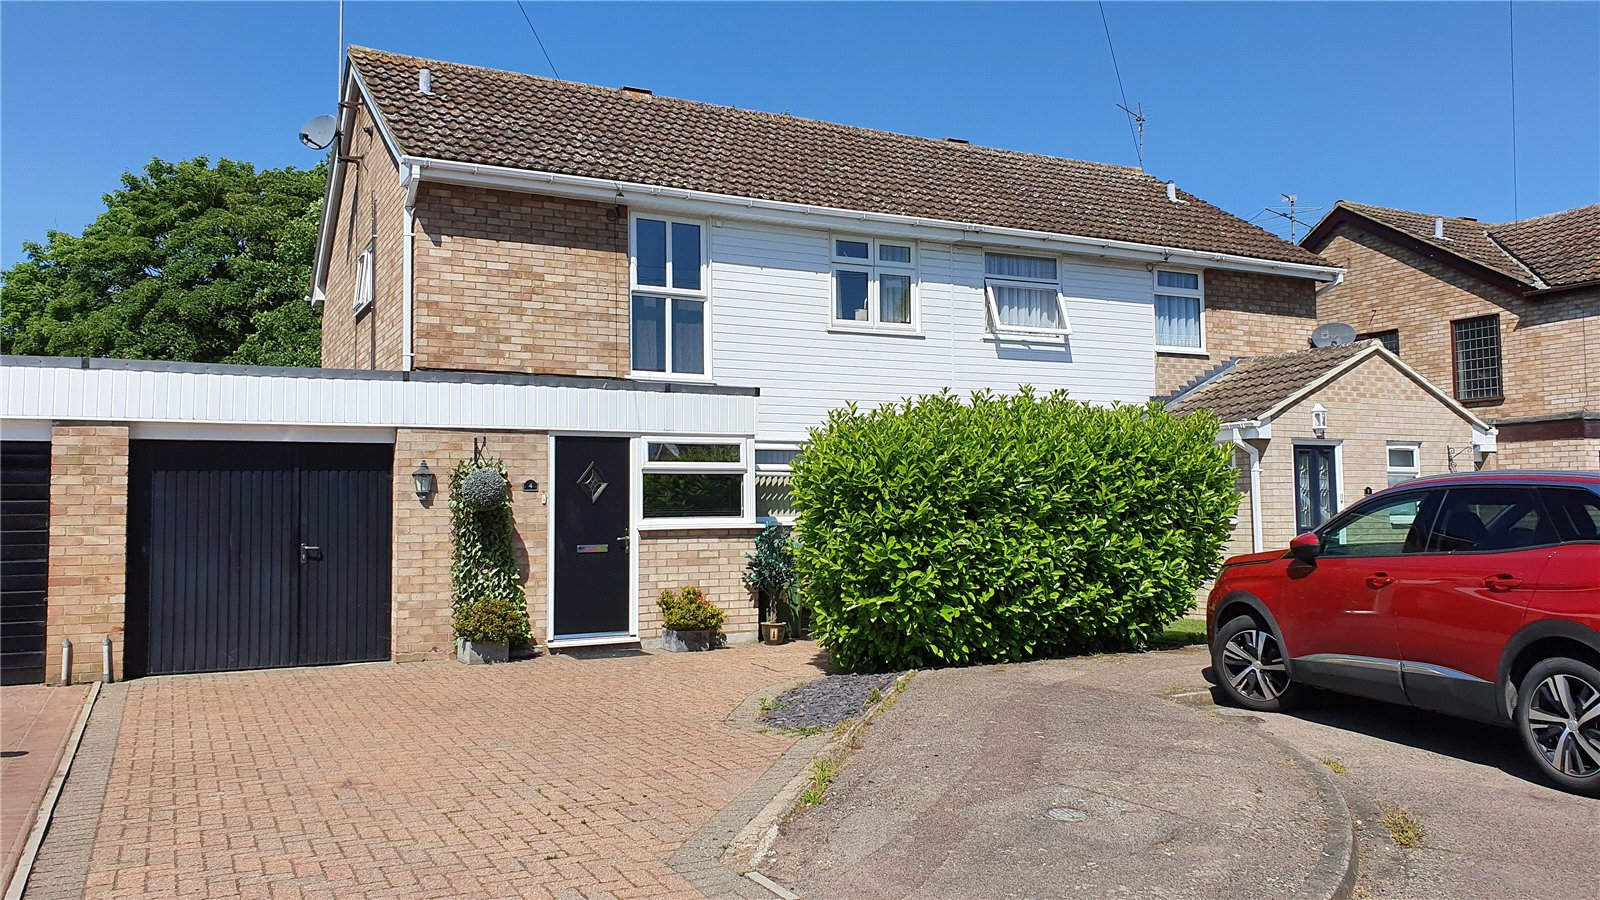 3 bed house for sale in Hathaway Close, Eaton Socon, PE19